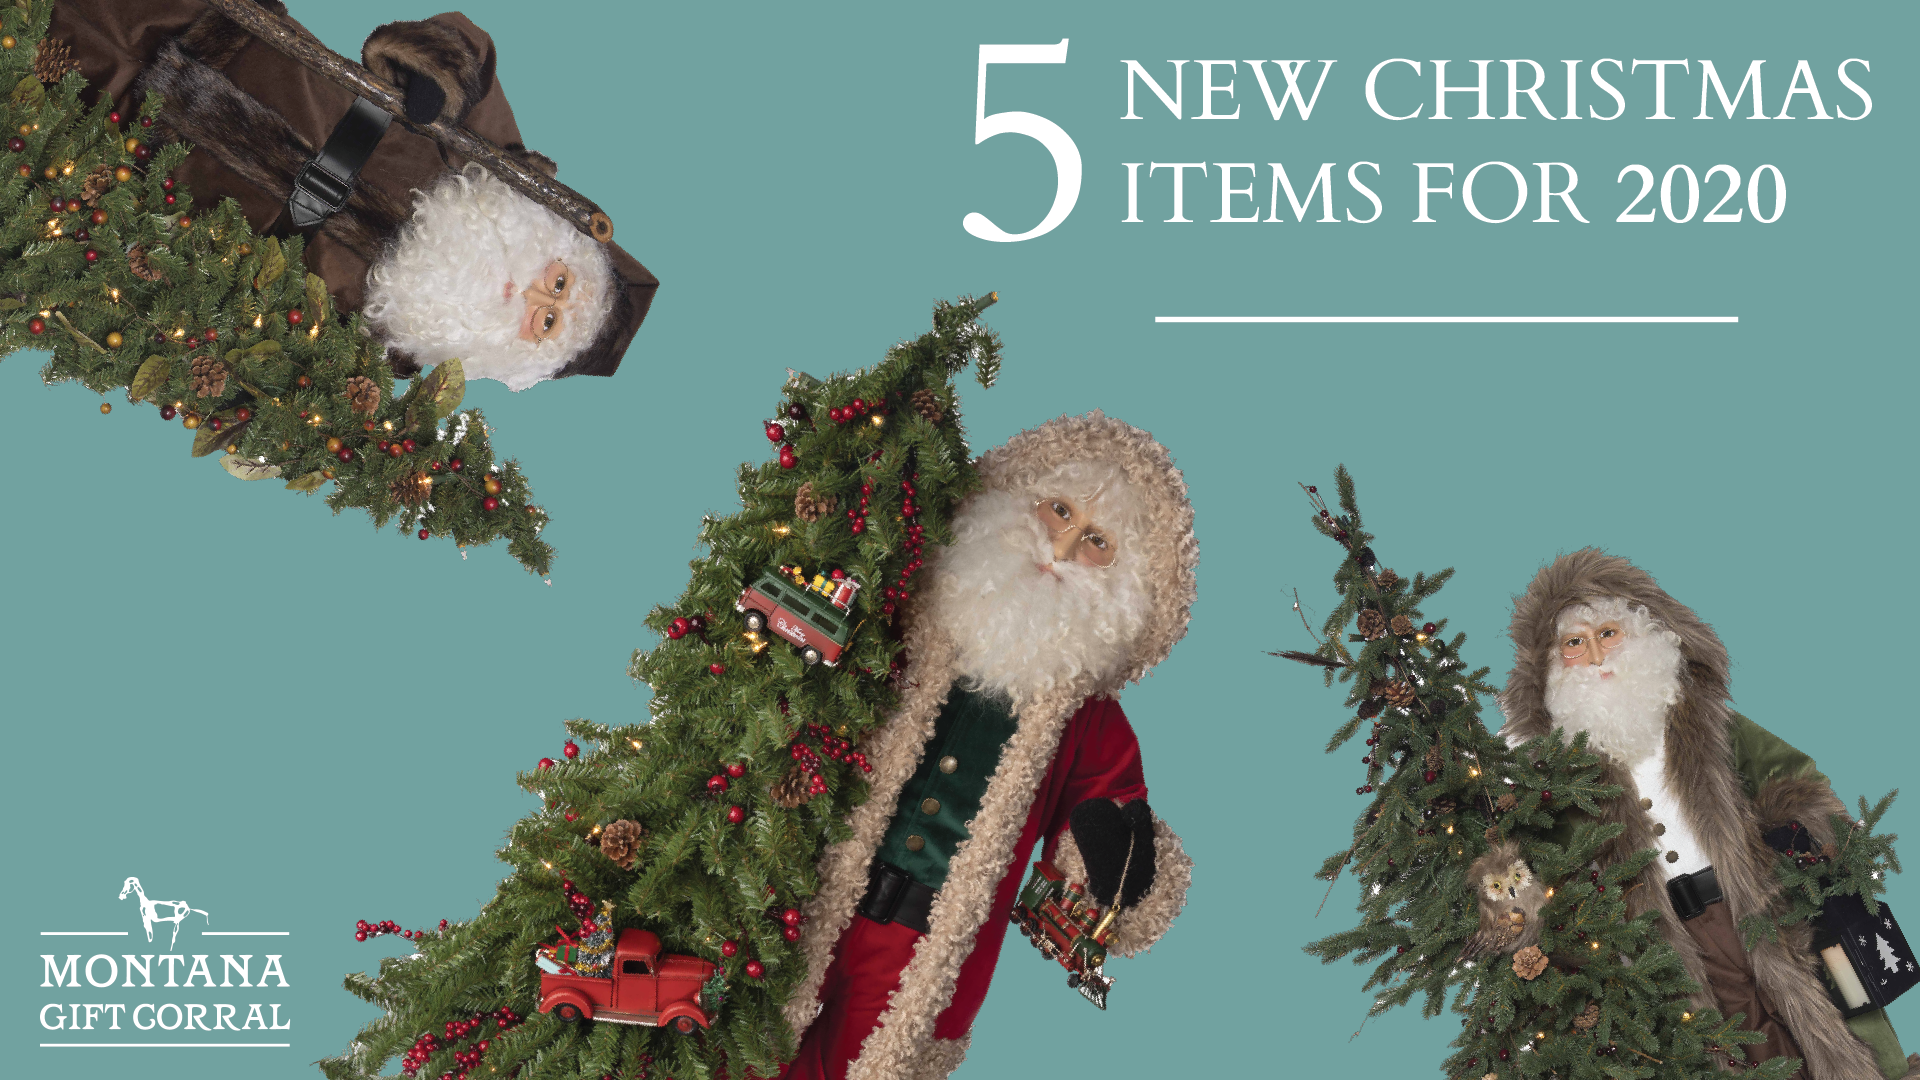 5 New Christmas Items for 2020